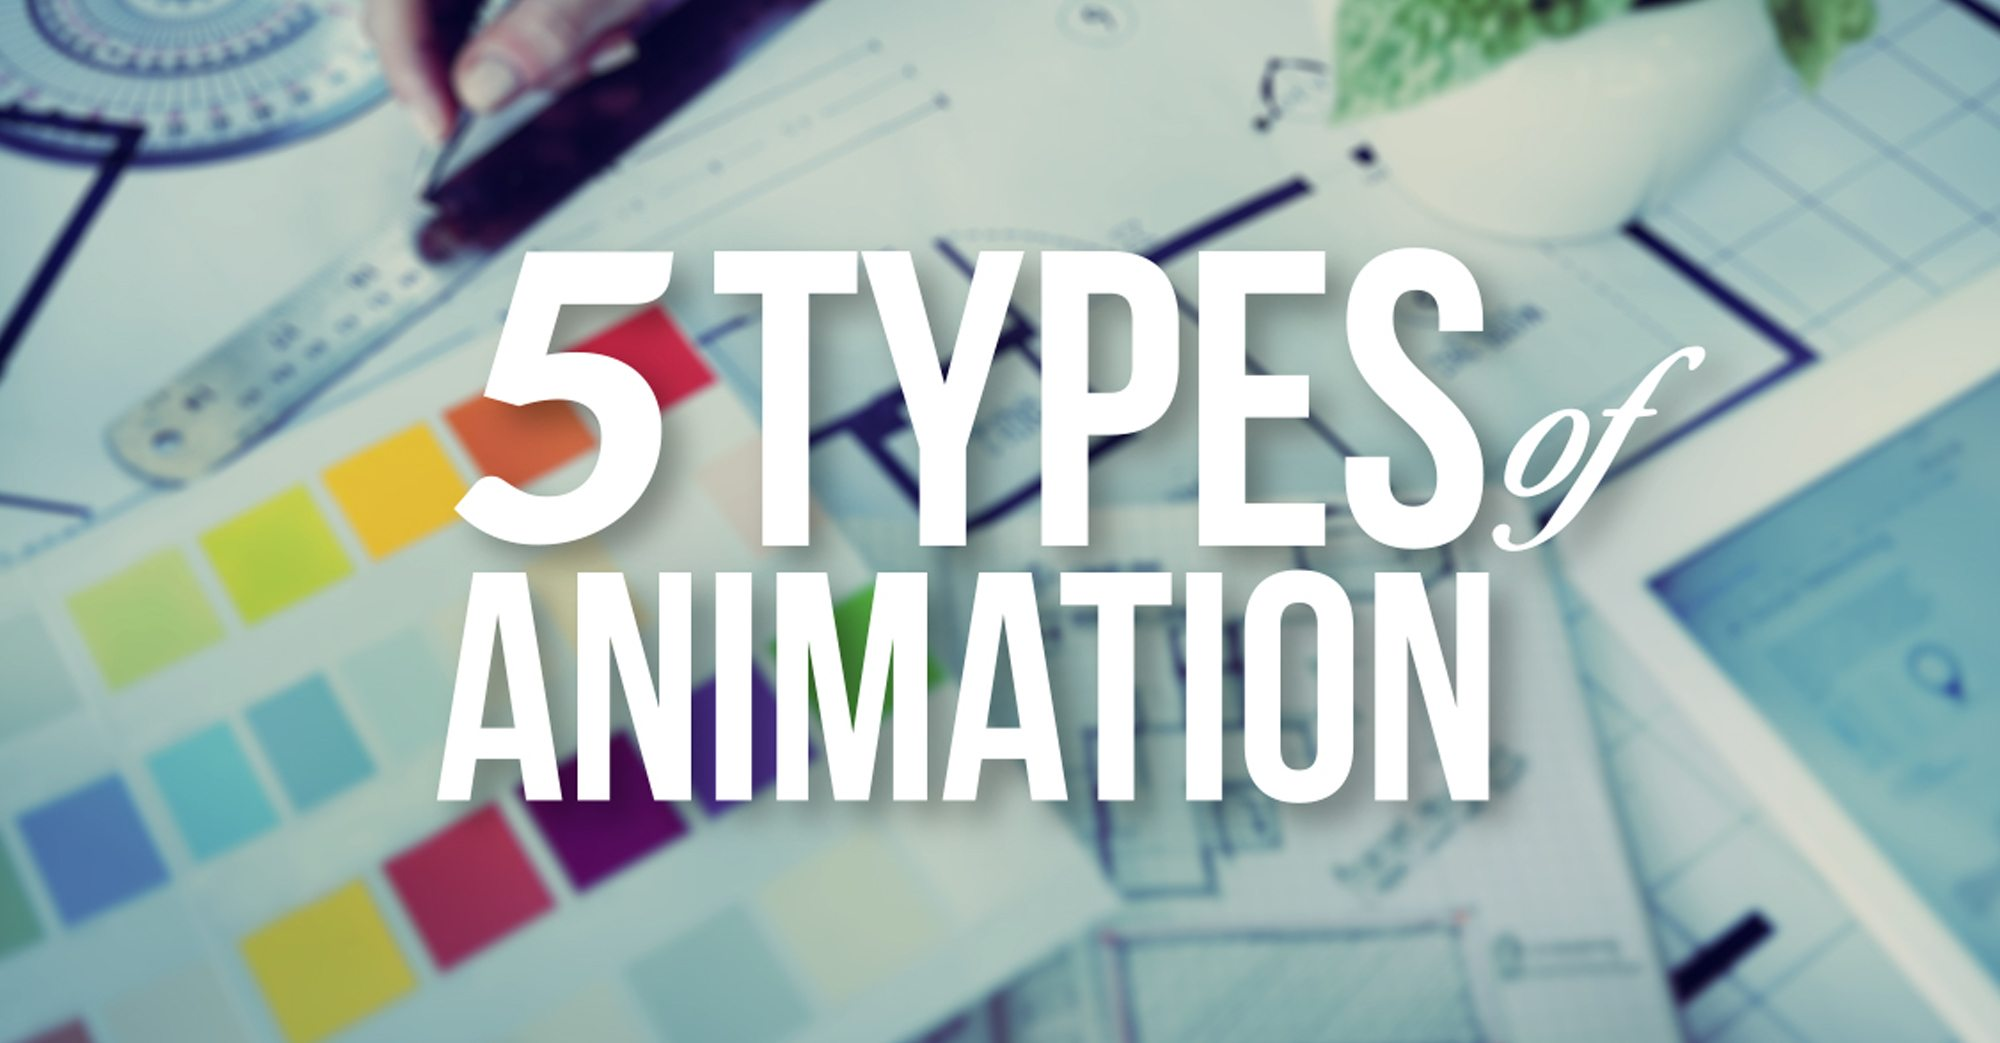 The 5 Types Of Animation A Beginner's Guide